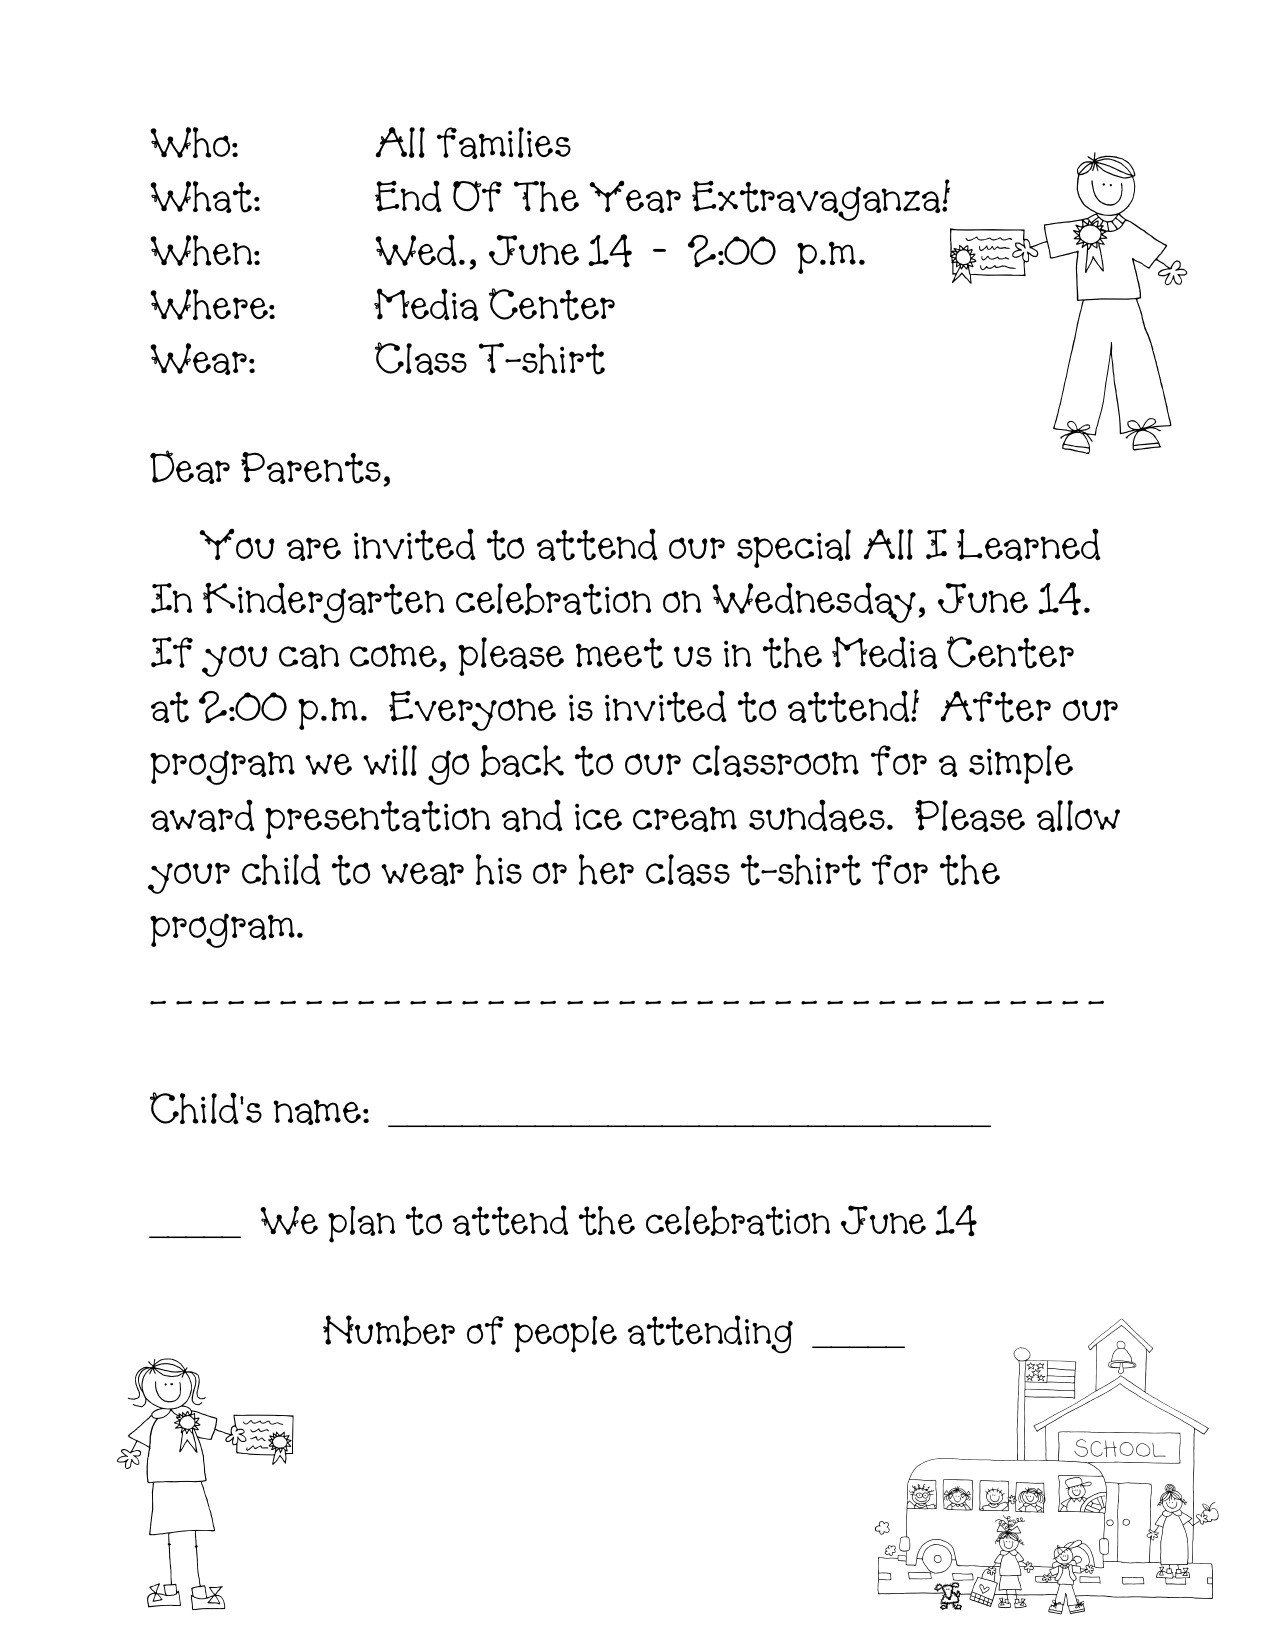 Preschool Graduation Programs Template End Of the Year Program